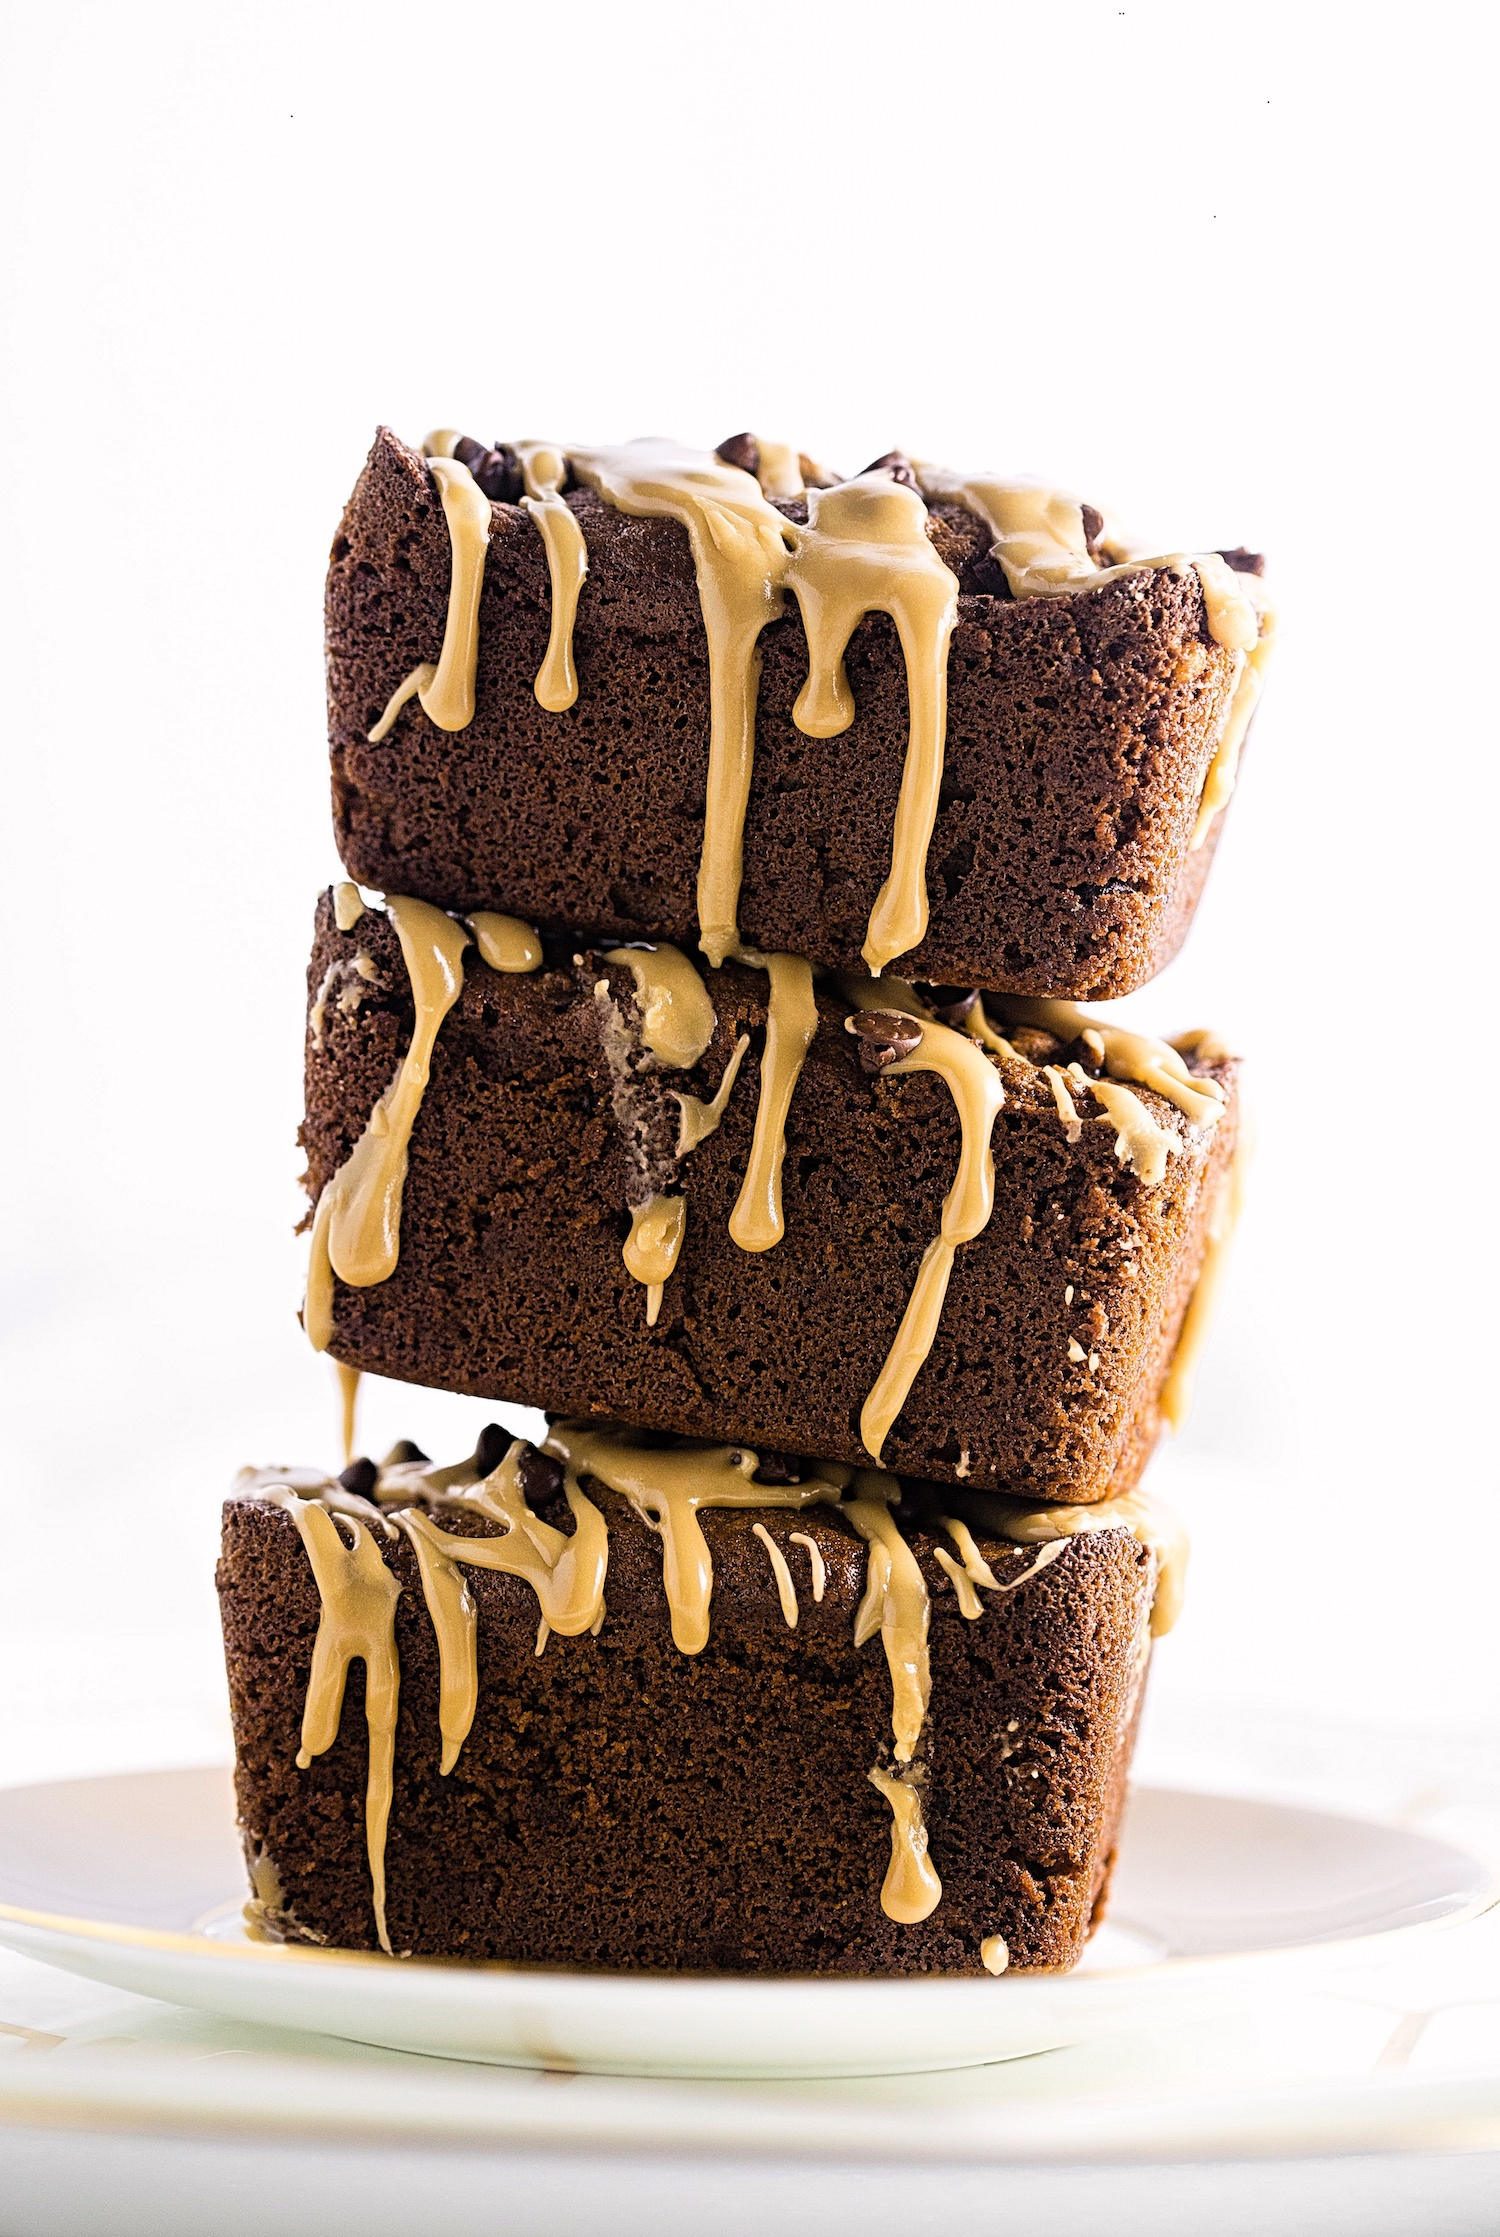 Gluten-Free Mocha Chocolate Chip Walnut Mini Loaf Cakes: soft, tender, slightly gooey, and packed with flavor from cocoa, coffee, chocolate chips, walnuts, and a glossy coffee glaze.